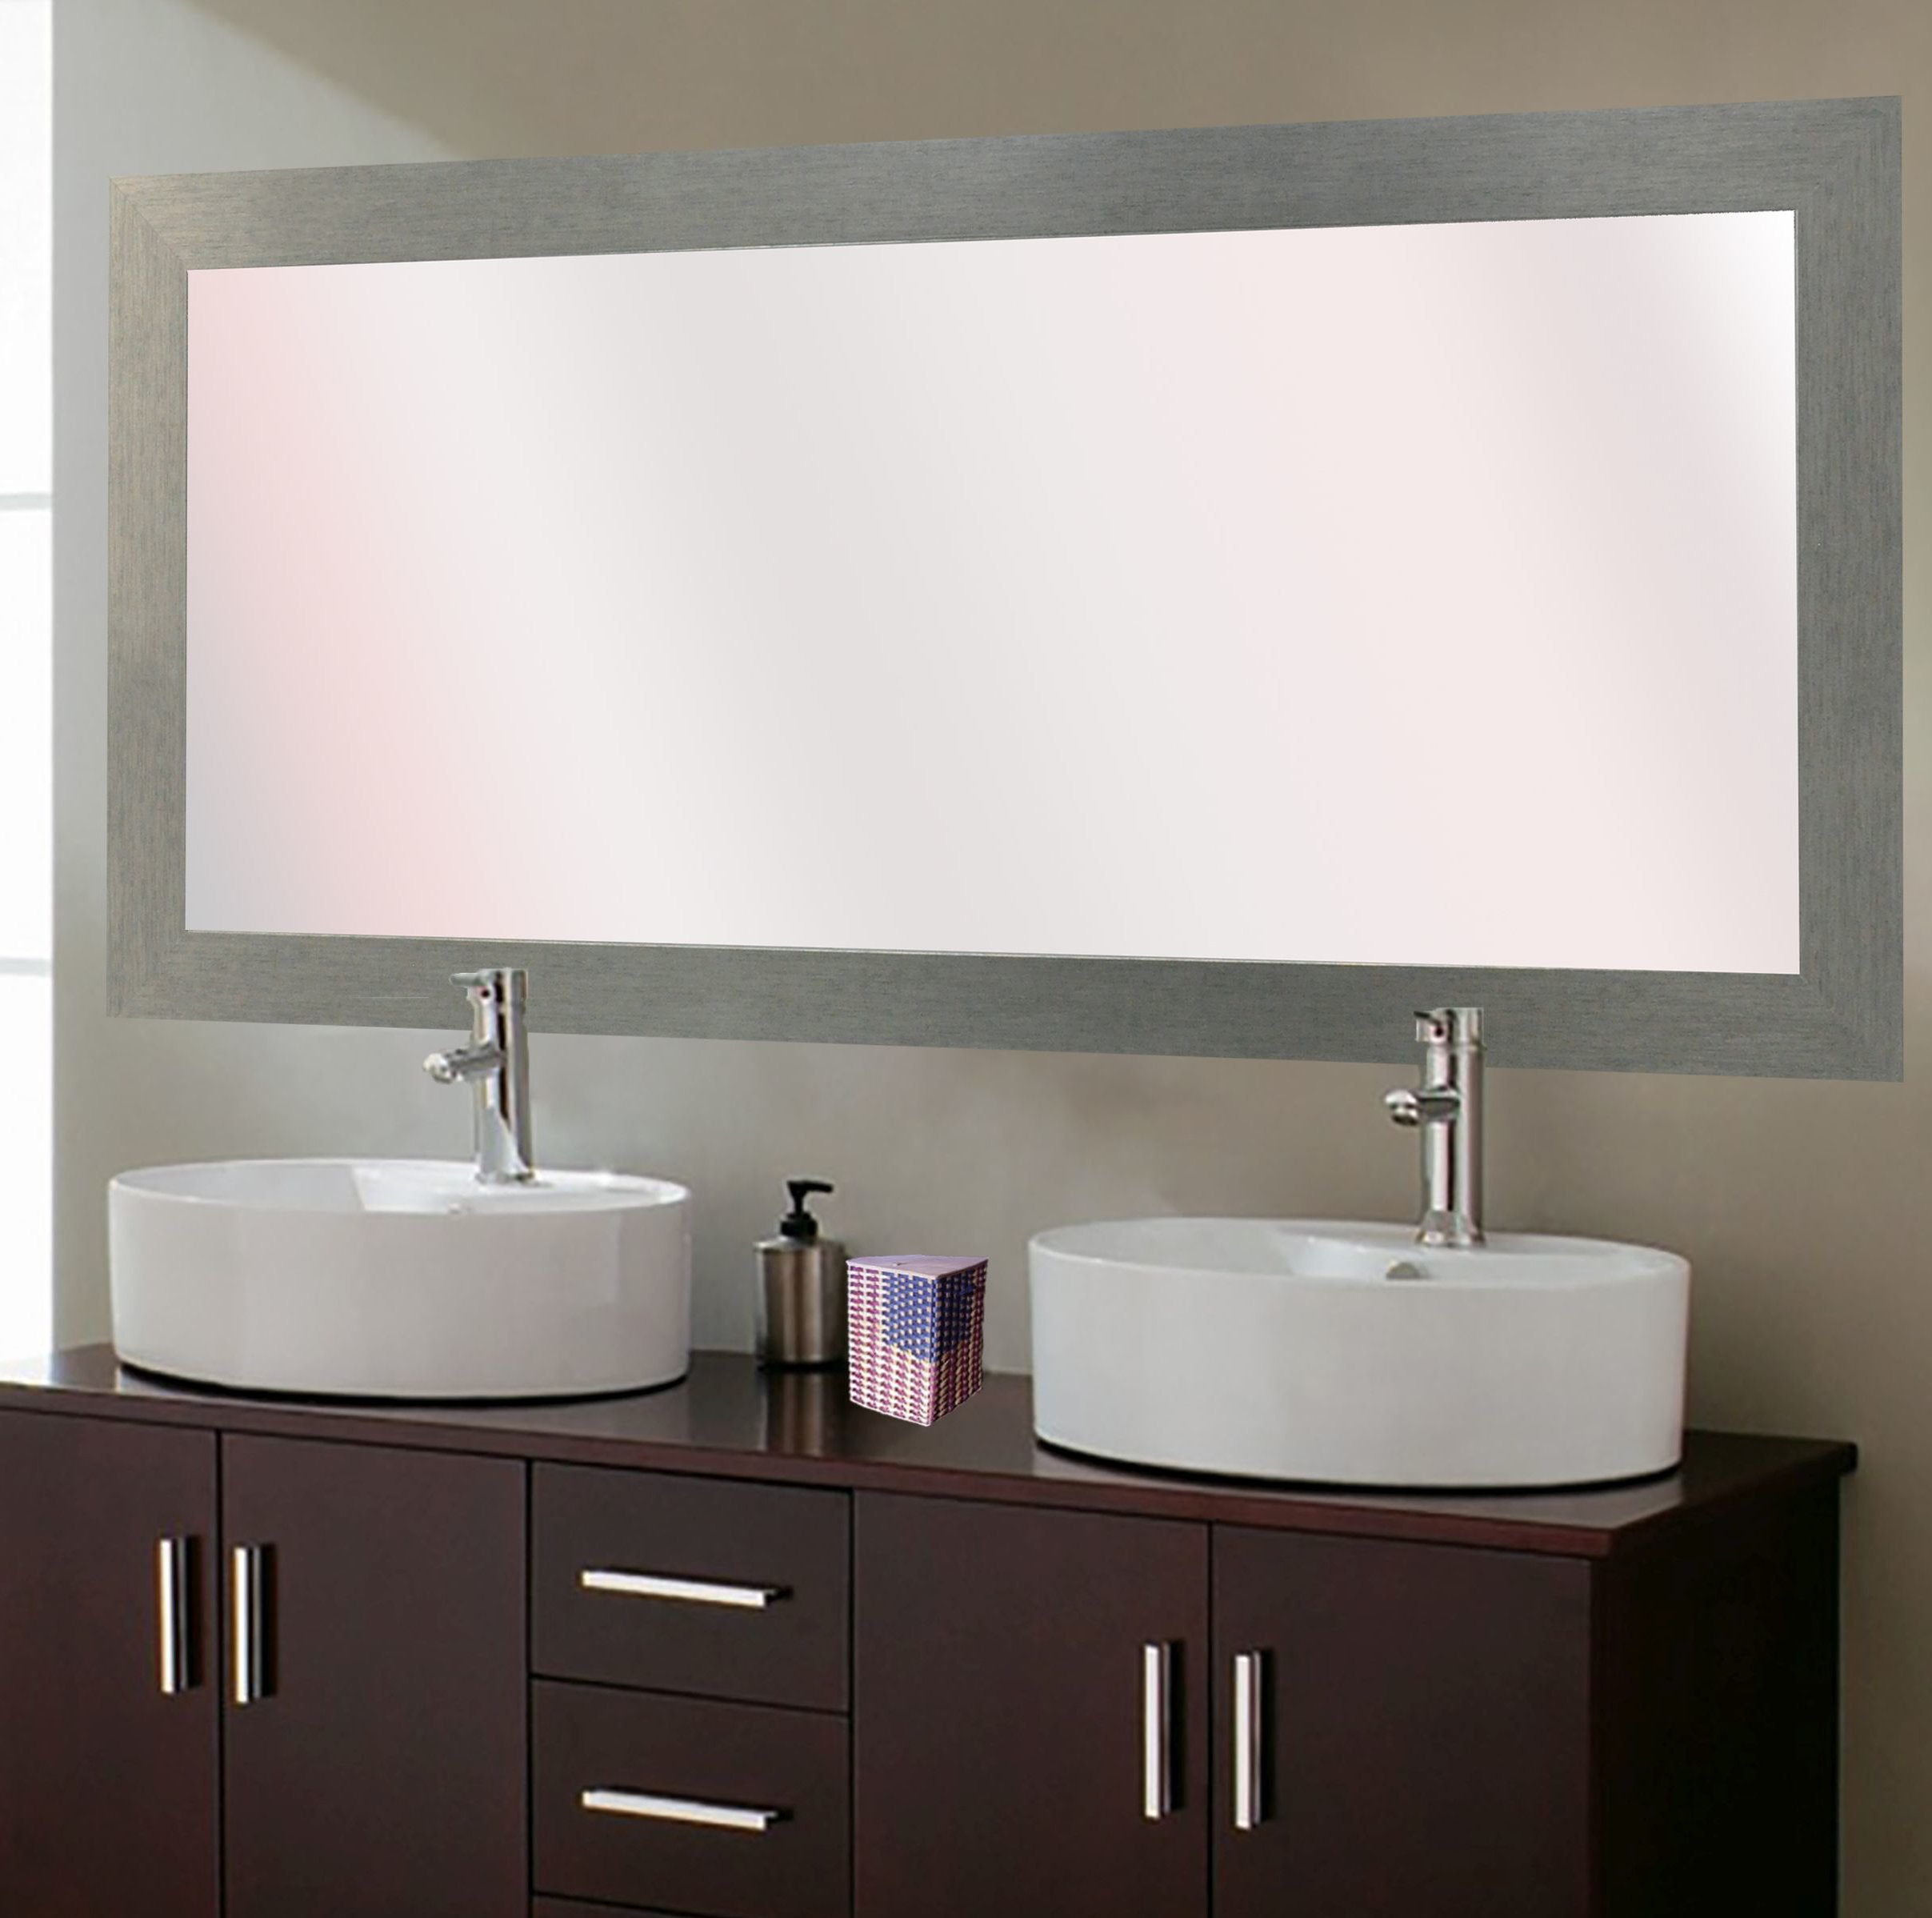 65 Inch Vanity Mirror | Wayfair With Regard To Landover Rustic Distressed Bathroom/vanity Mirrors (View 1 of 30)